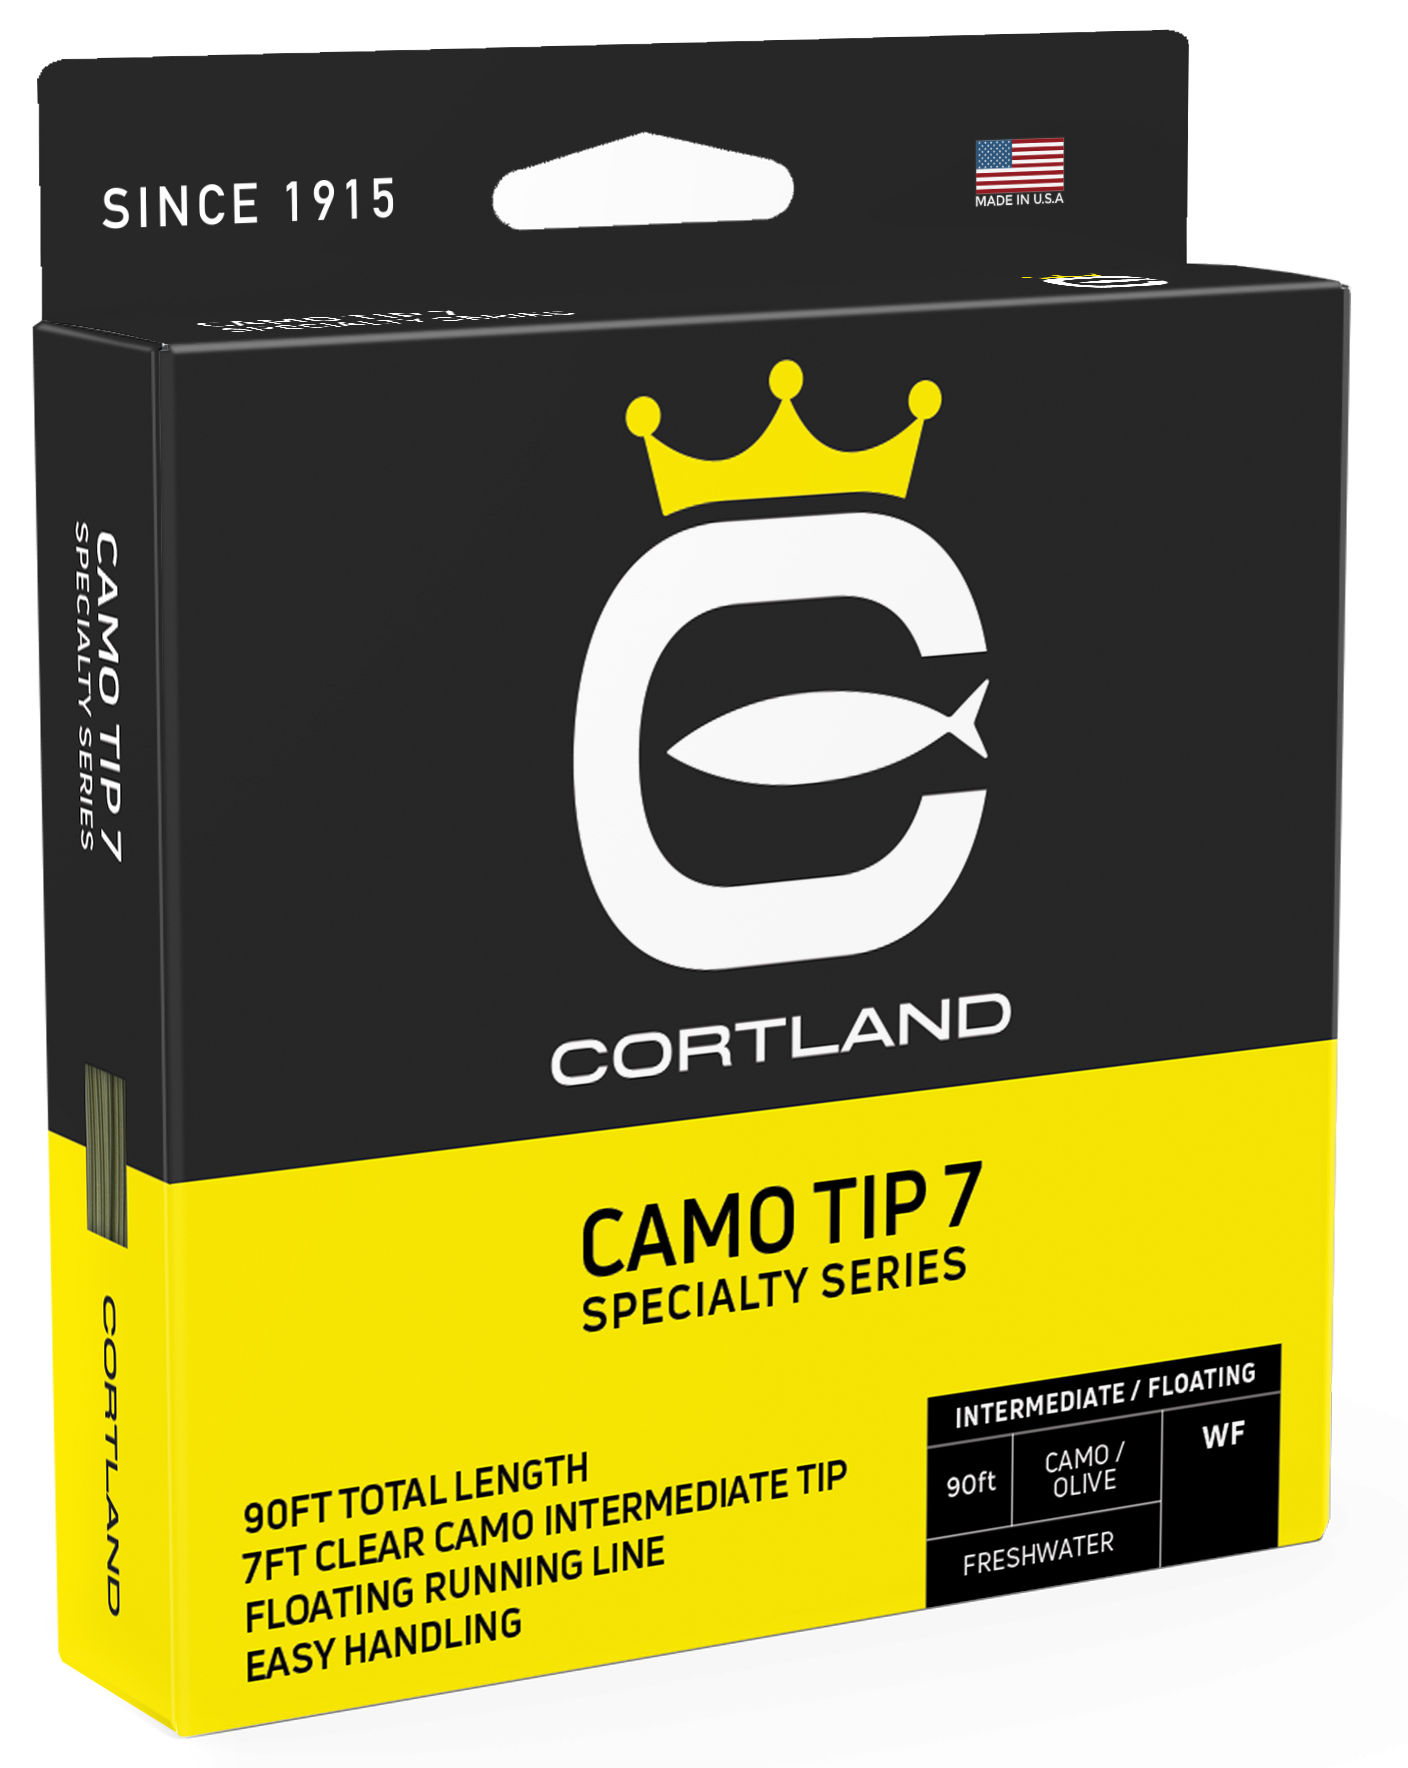 Fly Line Intermediate Tip Cortland CAMO TIP 7 Specialty Series - Box